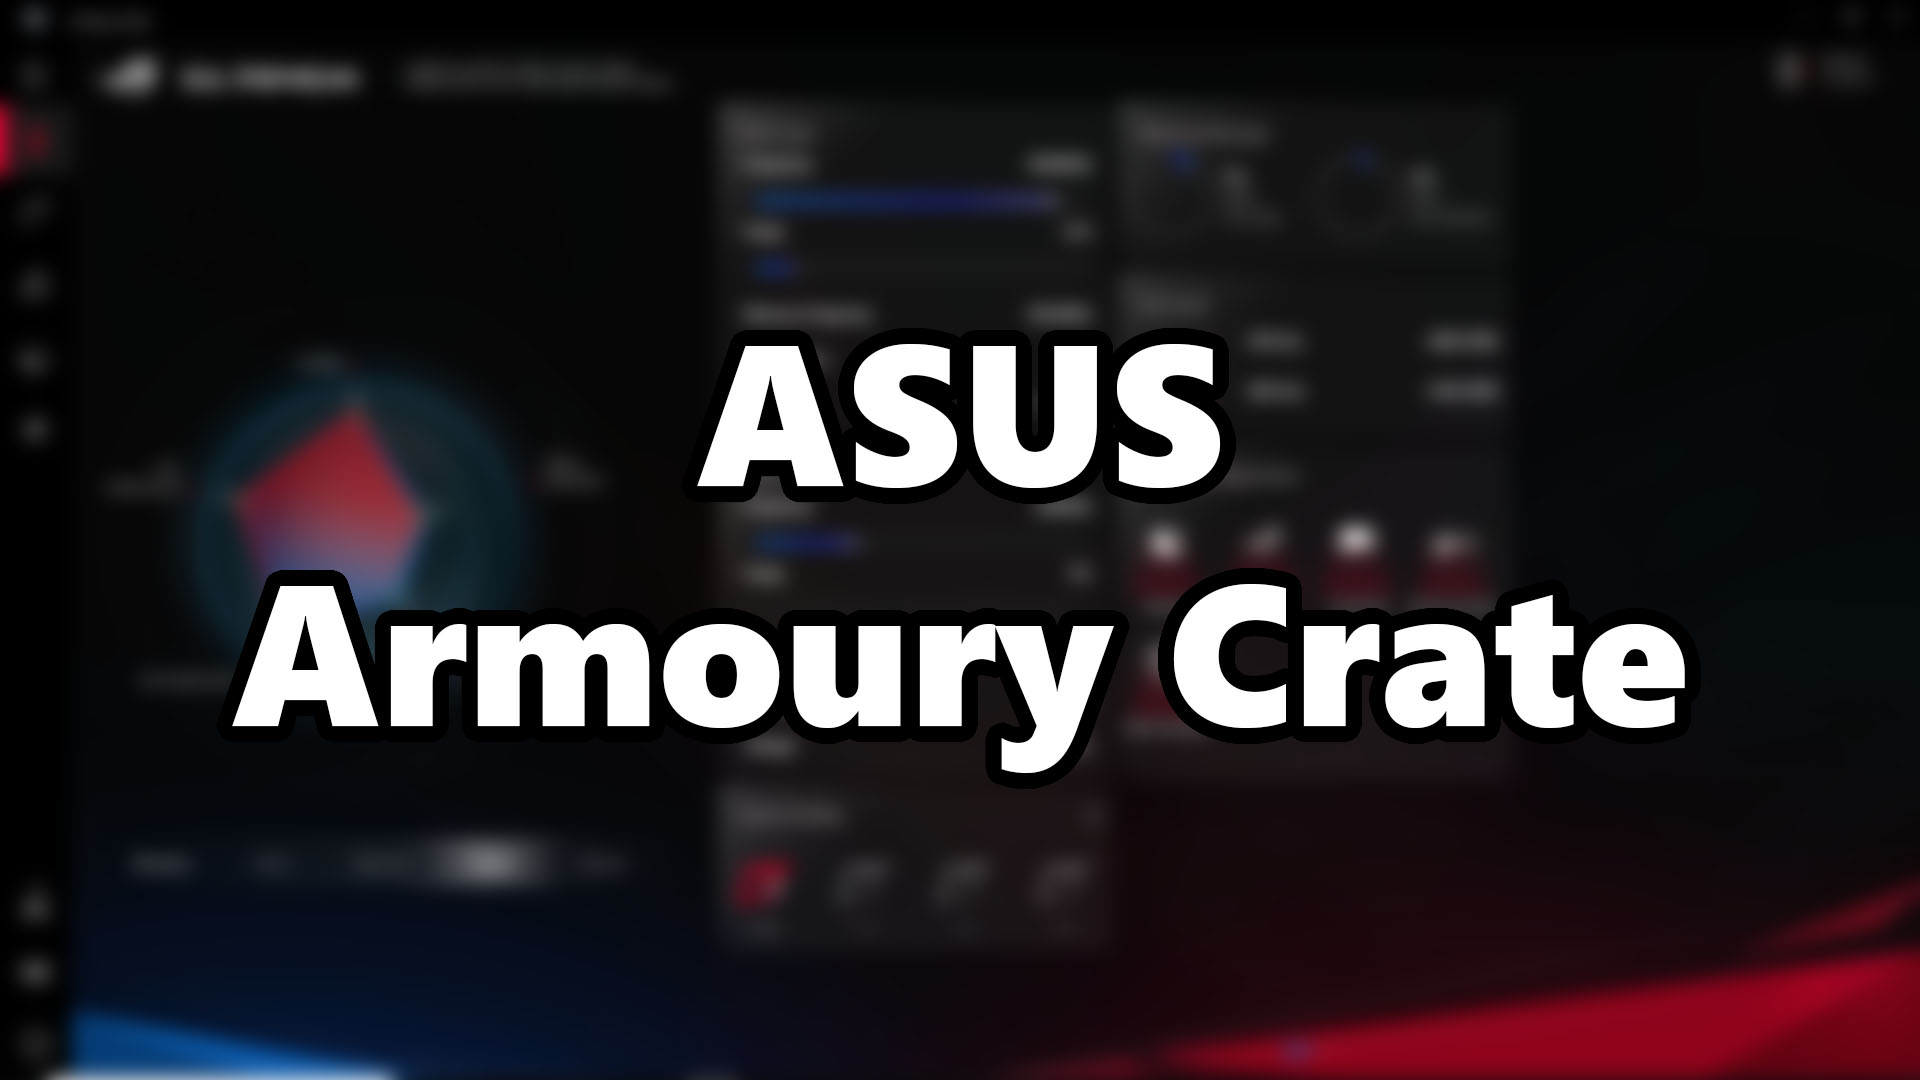 New ASUS Armoury Crate Software Preview - Clean & Informative | Nasi